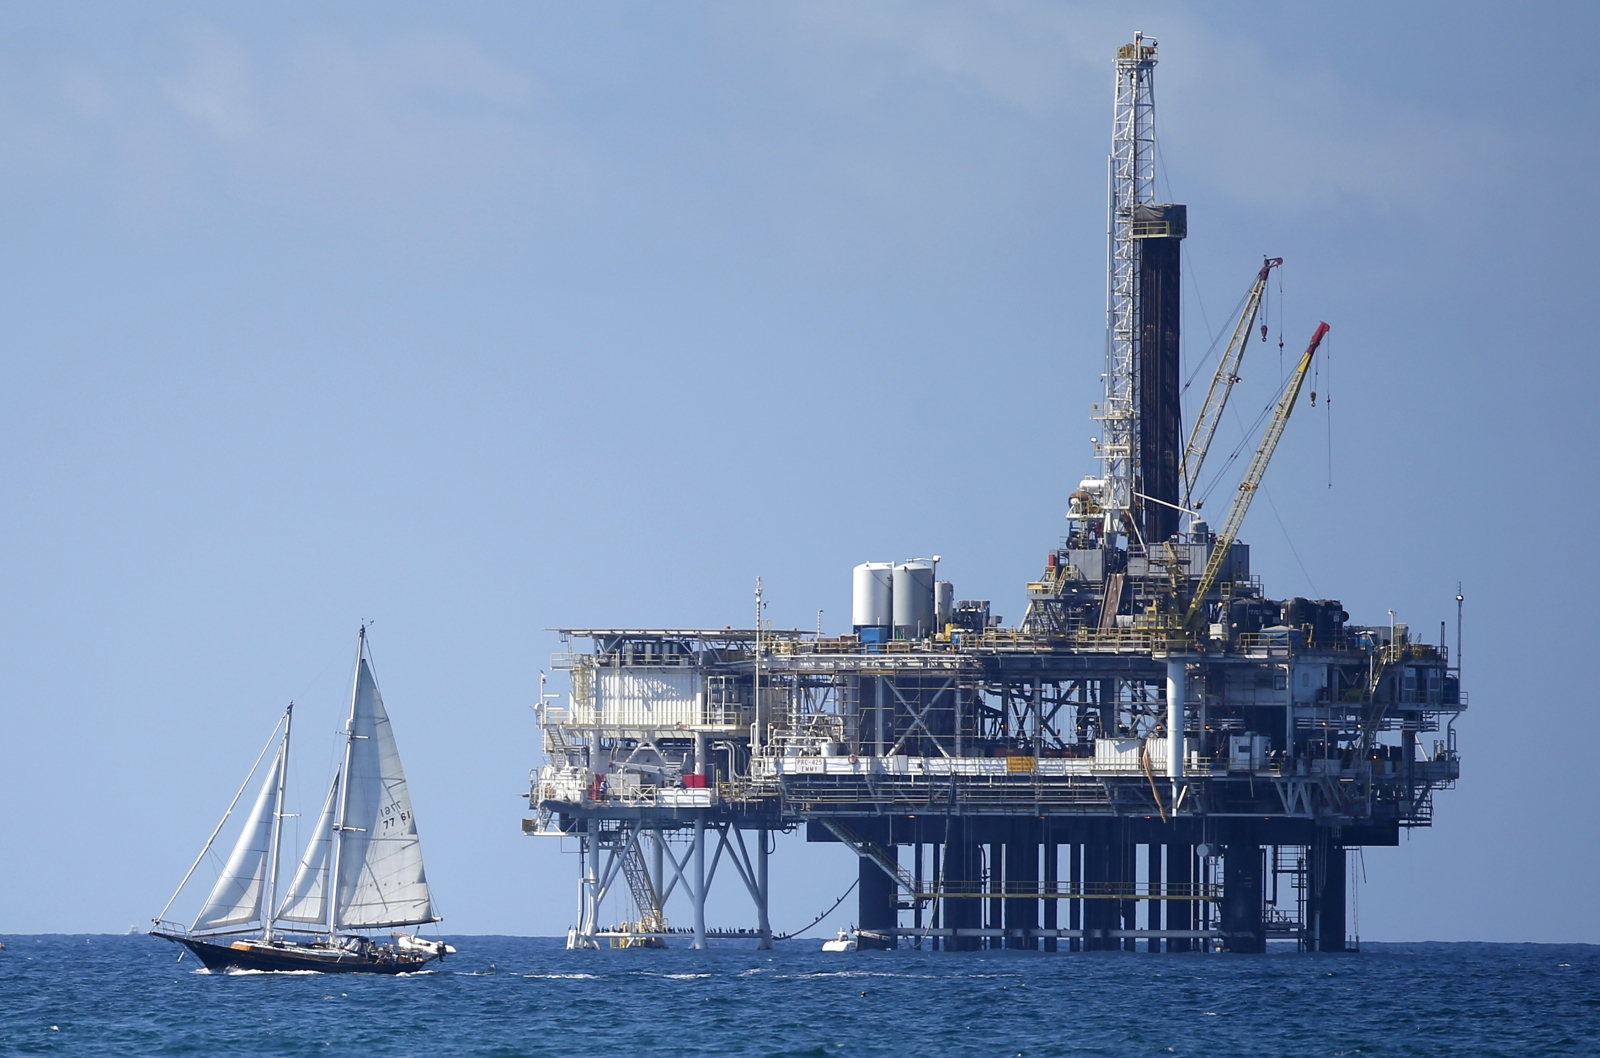 UK Oil and Gas: About 32% of businesses planning to cut more jobs this year, BoS says